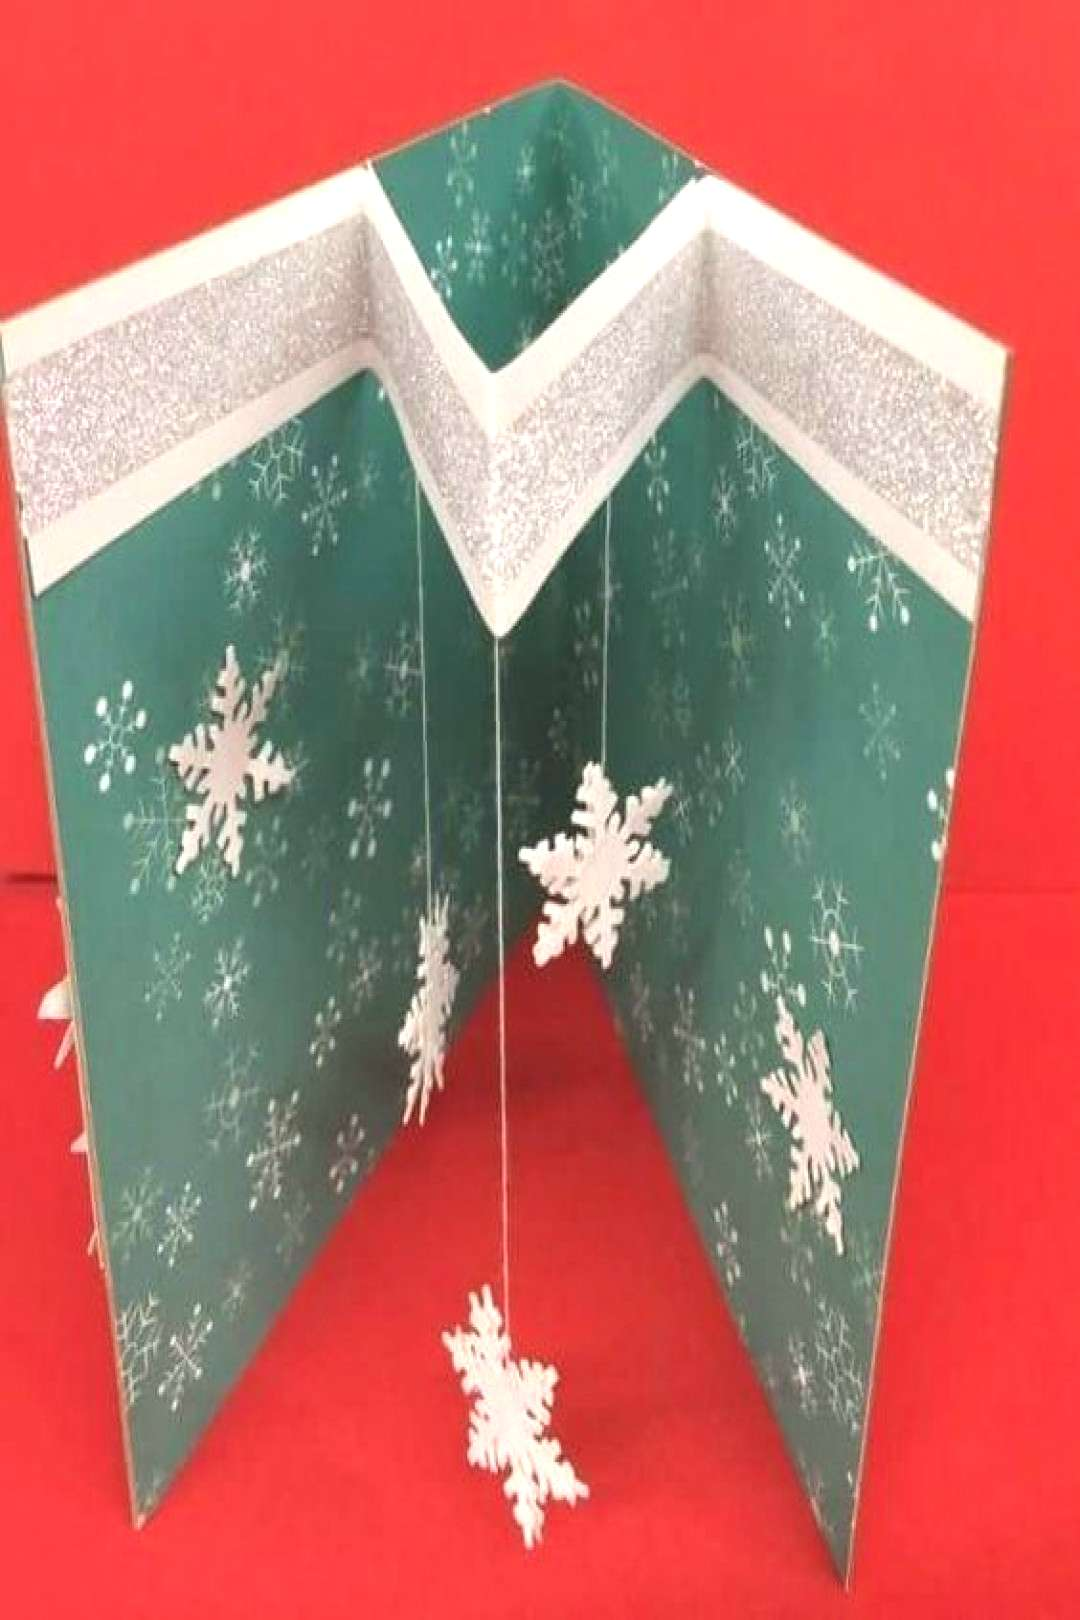 50+ DIY Christmas Card Ideas Youll Want to Send This Season Gift Ideas Corner